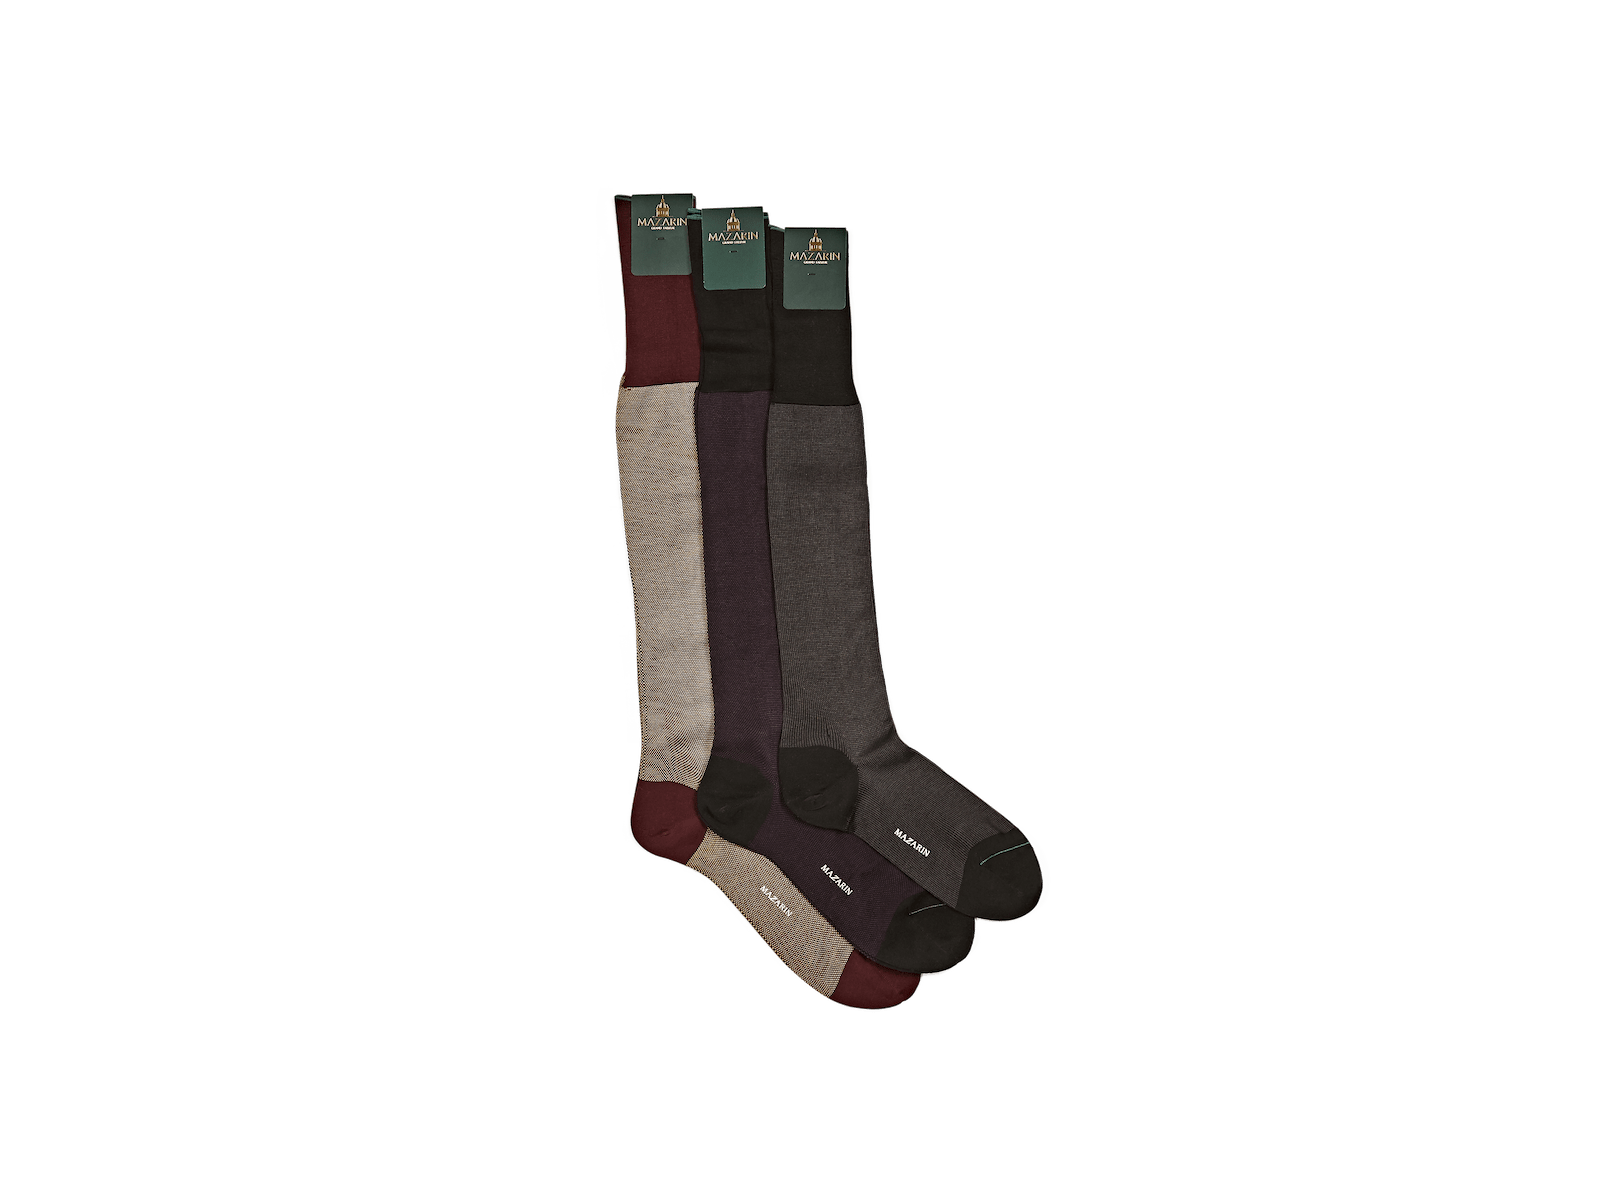 Luxe Socks in Grey and Black Cotton